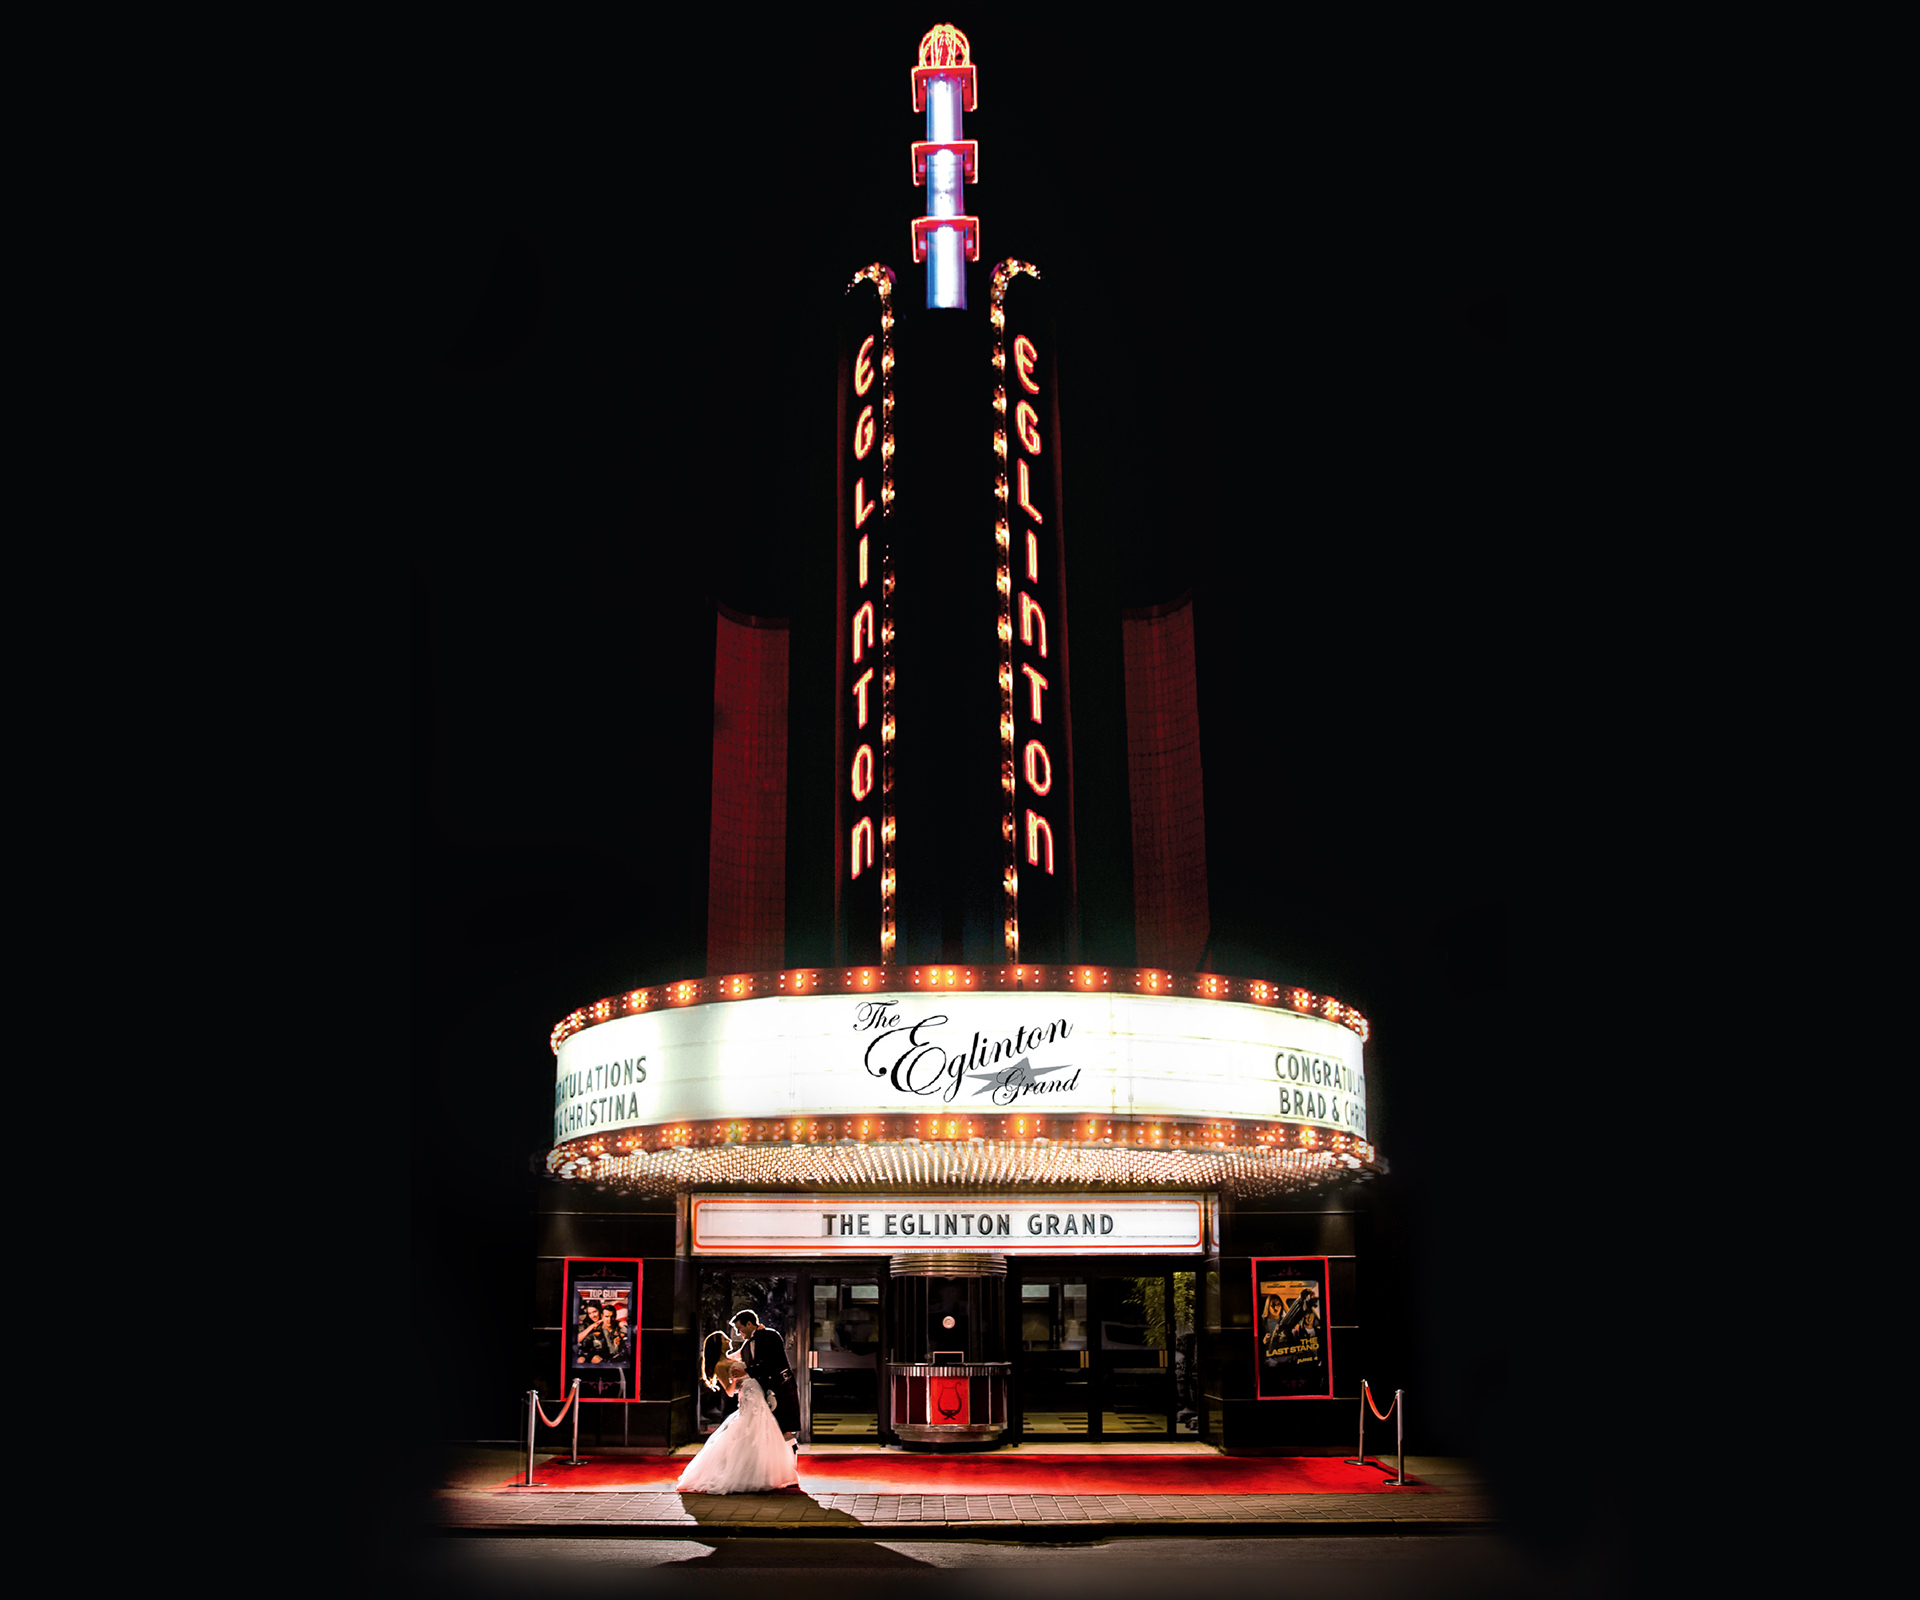 Photo of the Eglinton Grand and marquee.